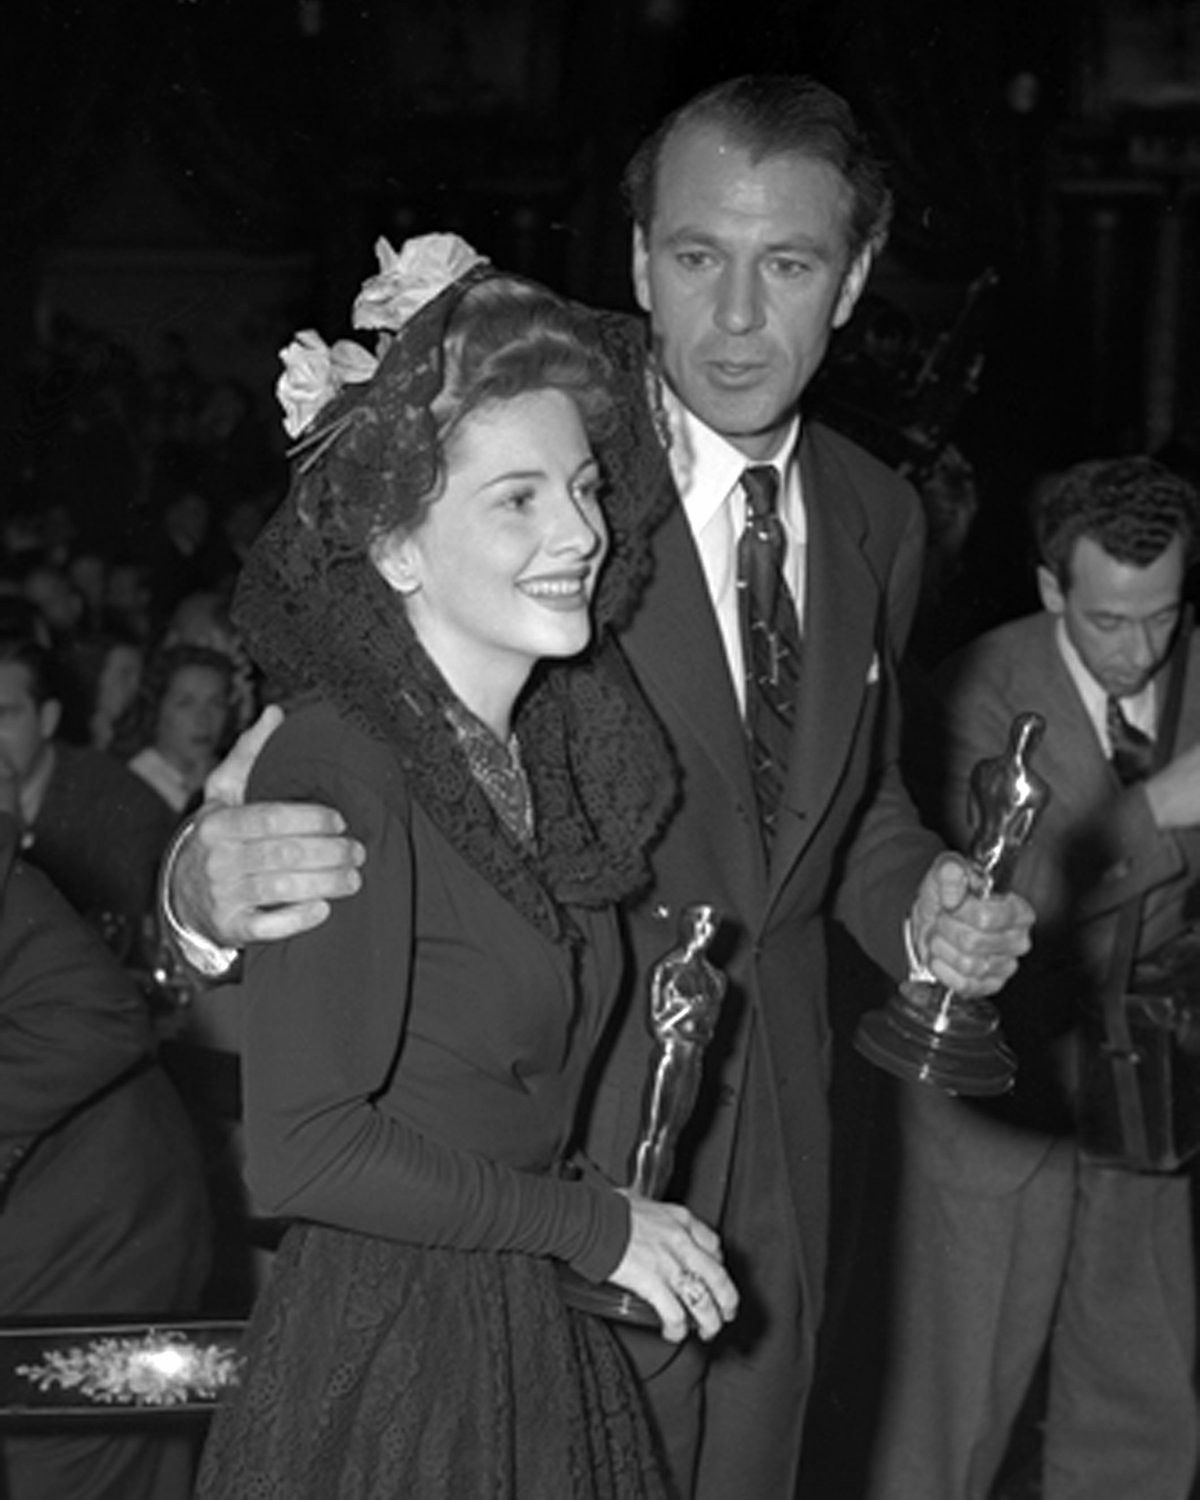 JOAN FONTAINE GARY COOPER HOLD OSCARS AFTER ACADEMY AWARDS 8X10 PHOTO (CC-040)